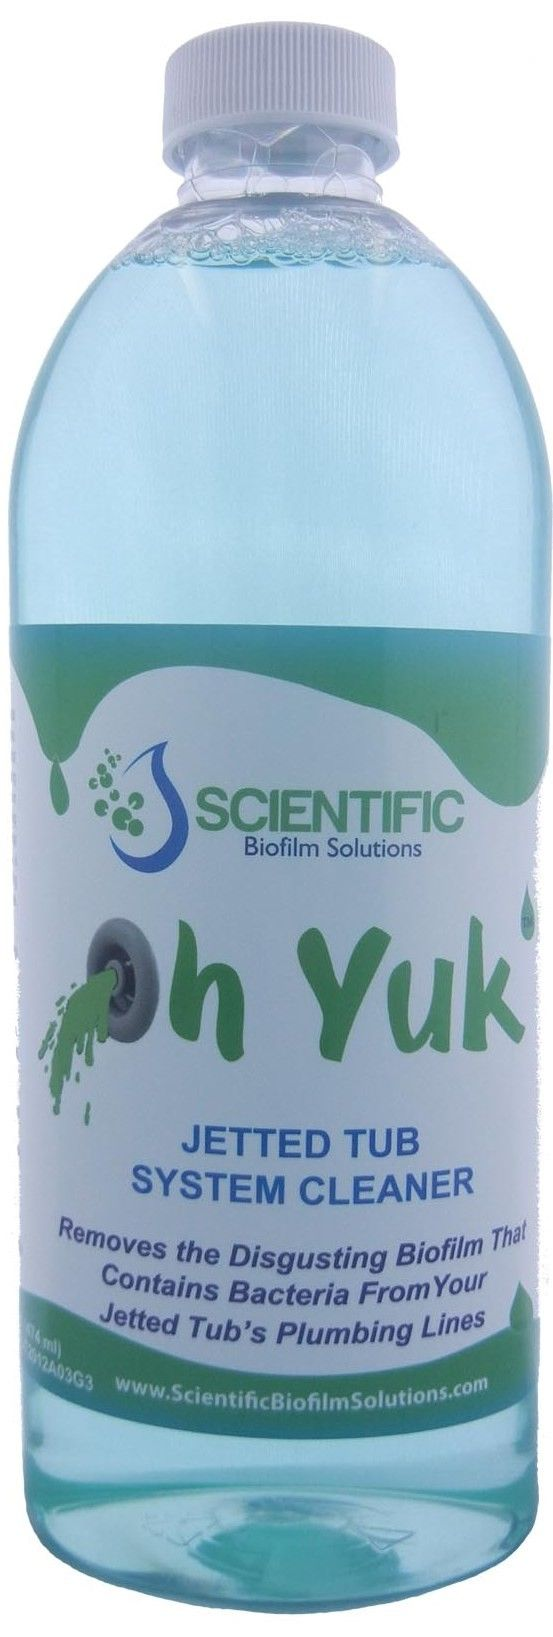 Oh Yuk Jetted Tub Cleaner- Only available online in Canada - One ...